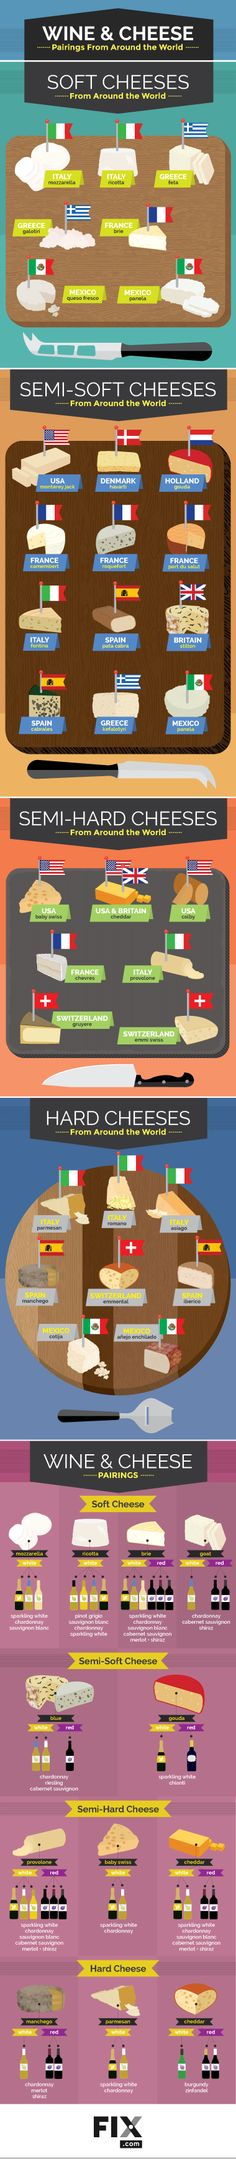 Who doesn't love wine and cheese? Next time you're entertaining guests, delight them with a cheeseboard of international flavors, paired perfectly with the appropriate vino!